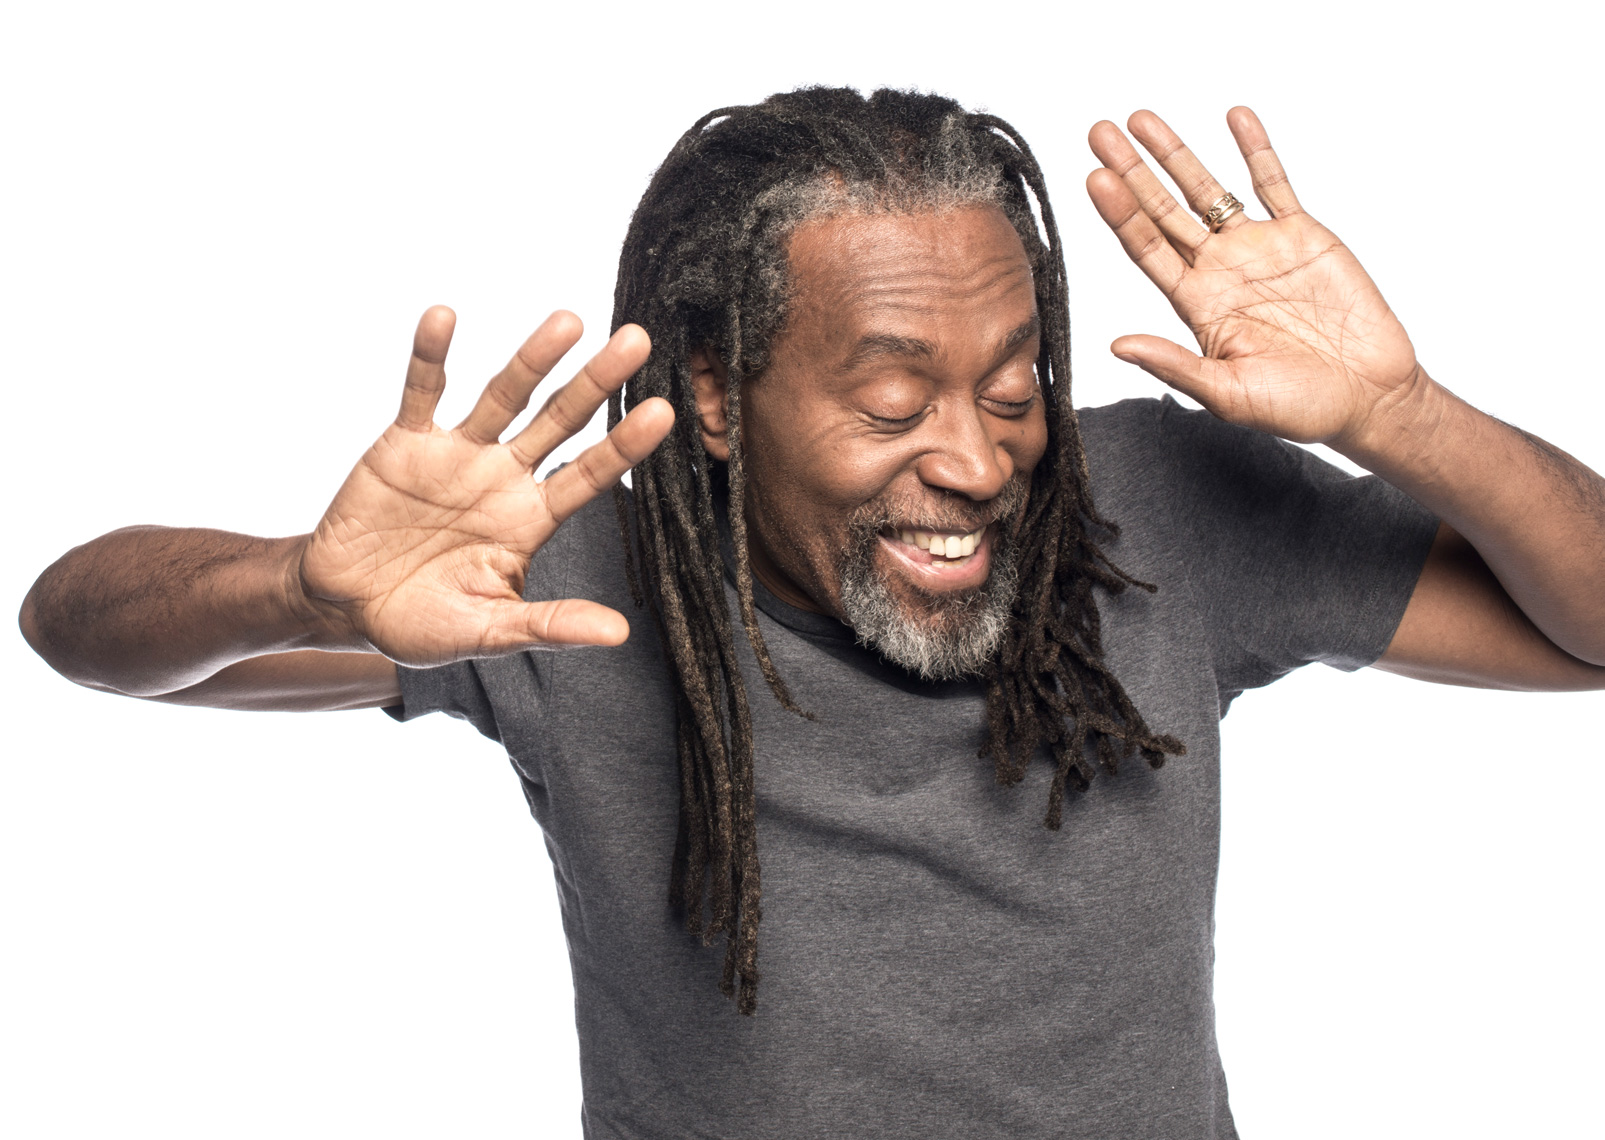 Bobby McFerrin, NYC